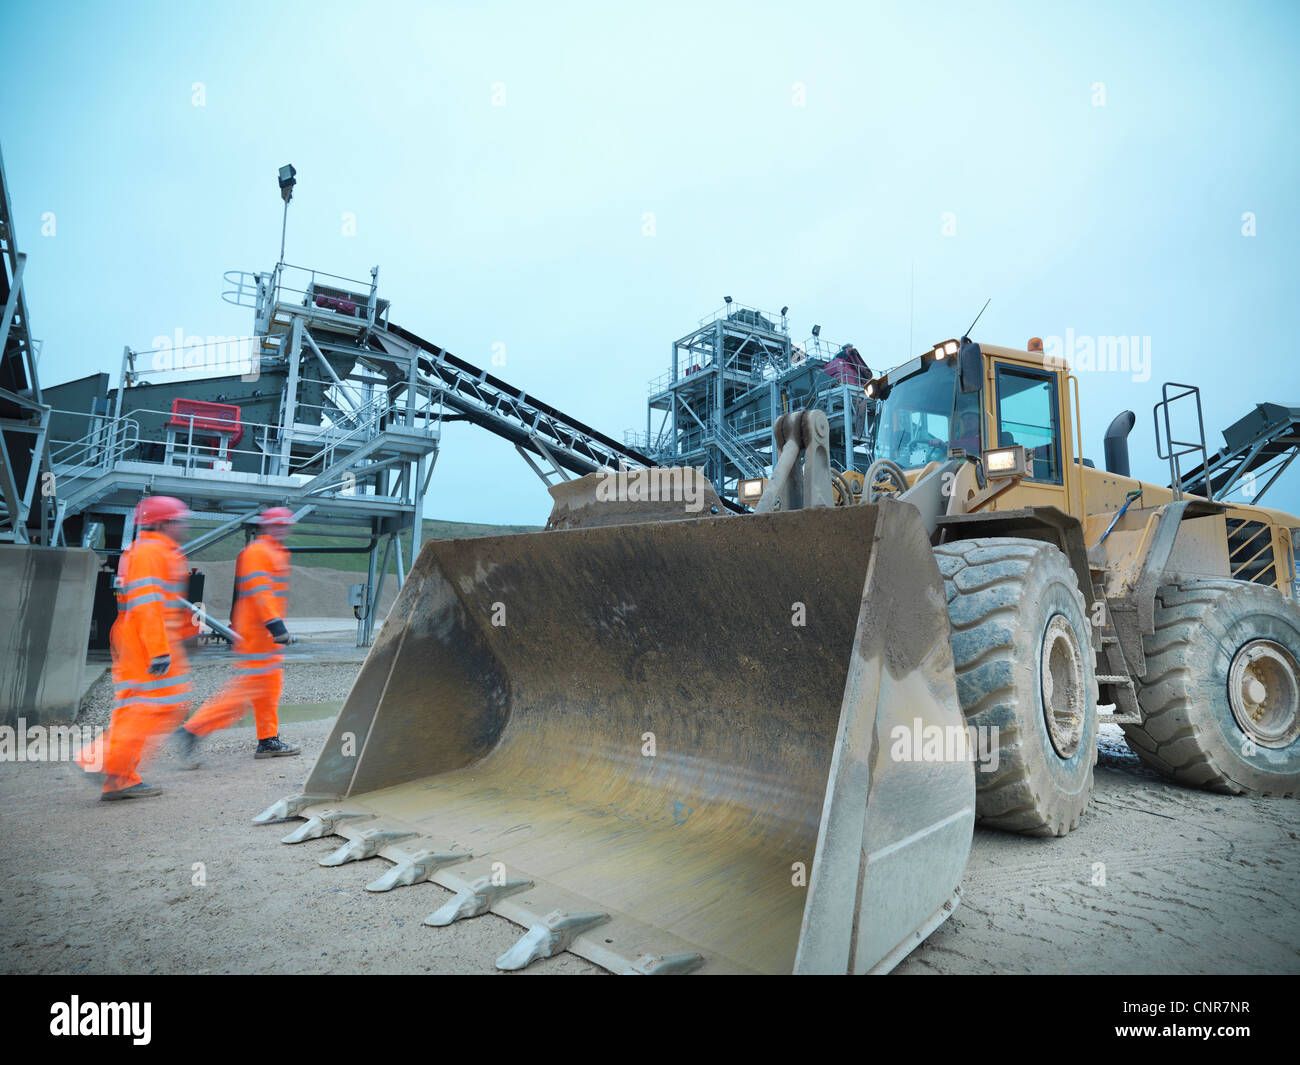 Blurred view of workers walking on site - Stock Image